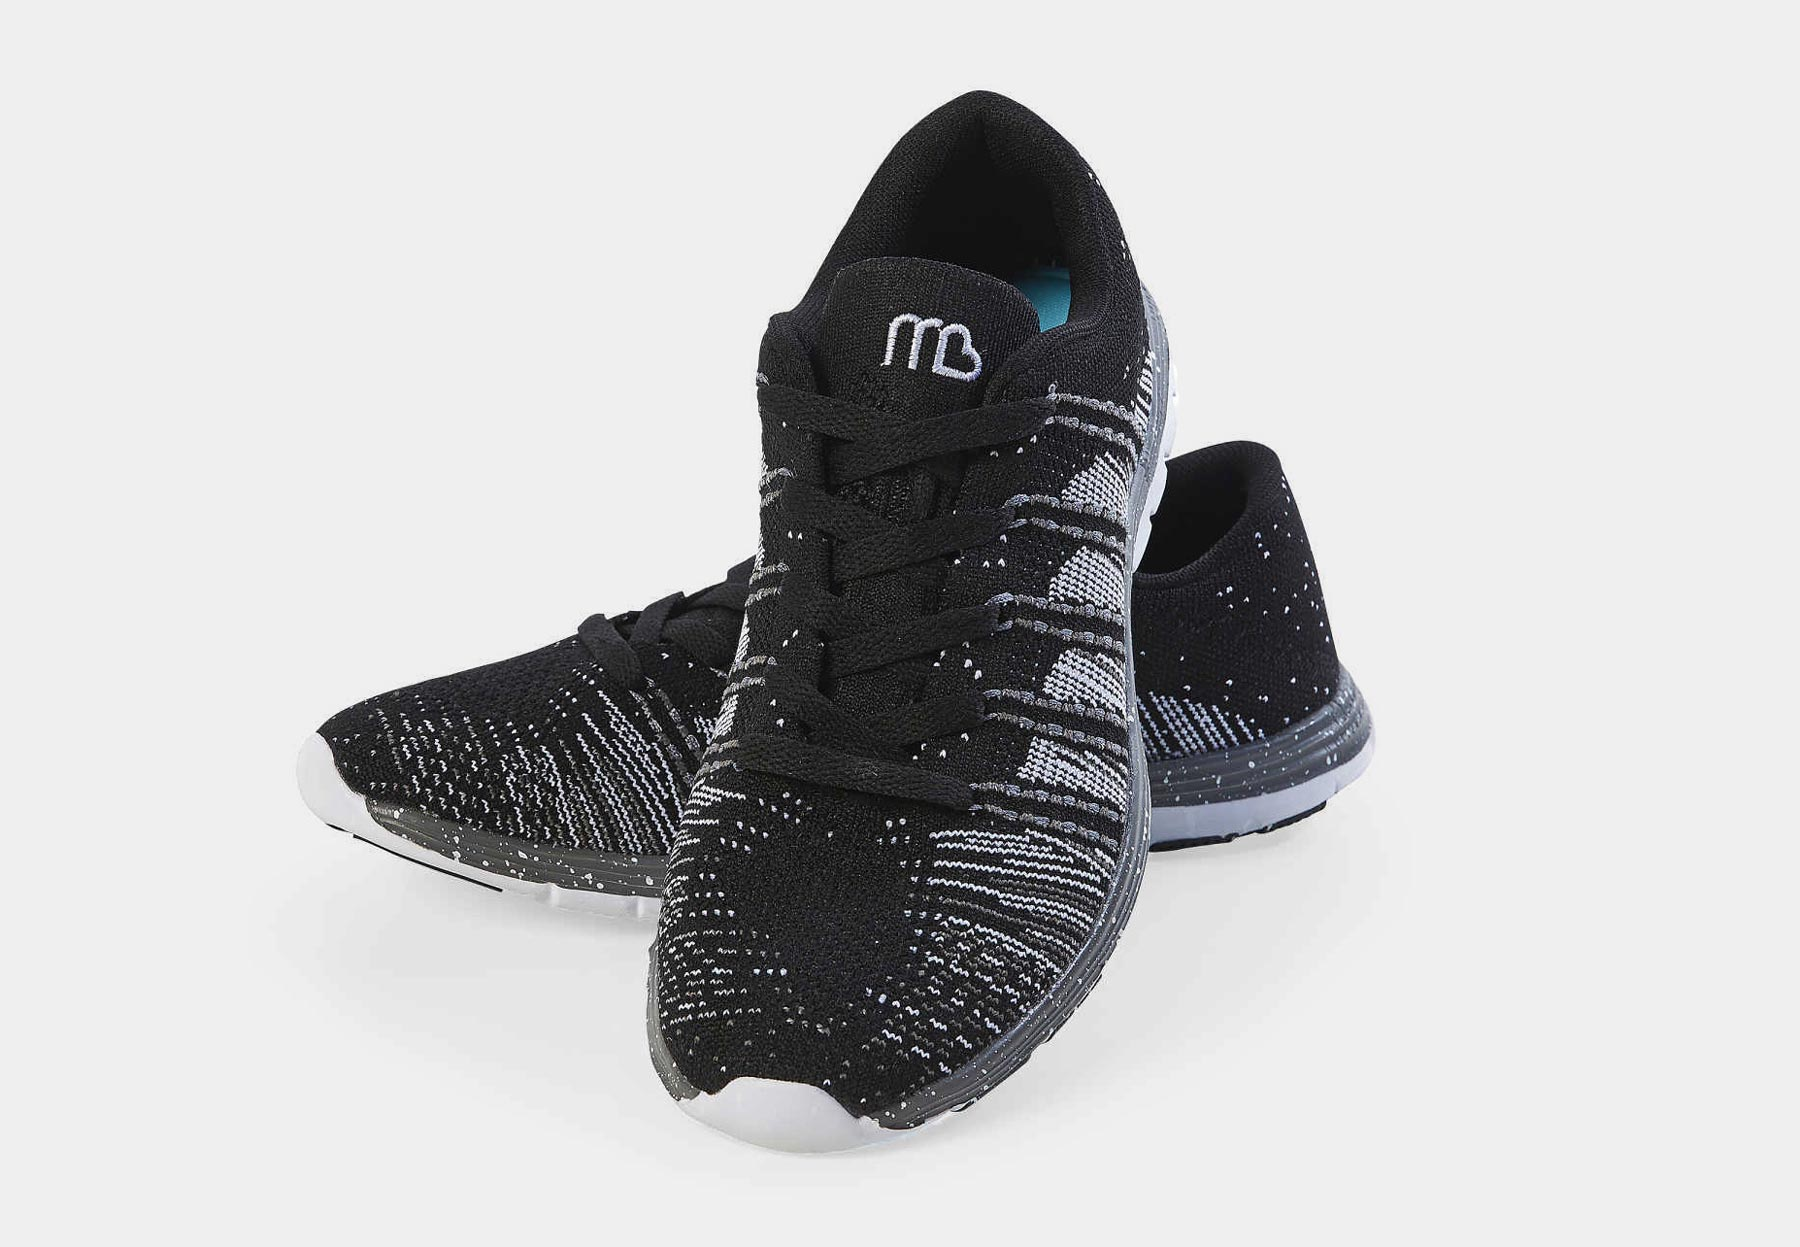 93ad9d8917c How to Choose the Right Running Shoes For You! - Michelle Bridges